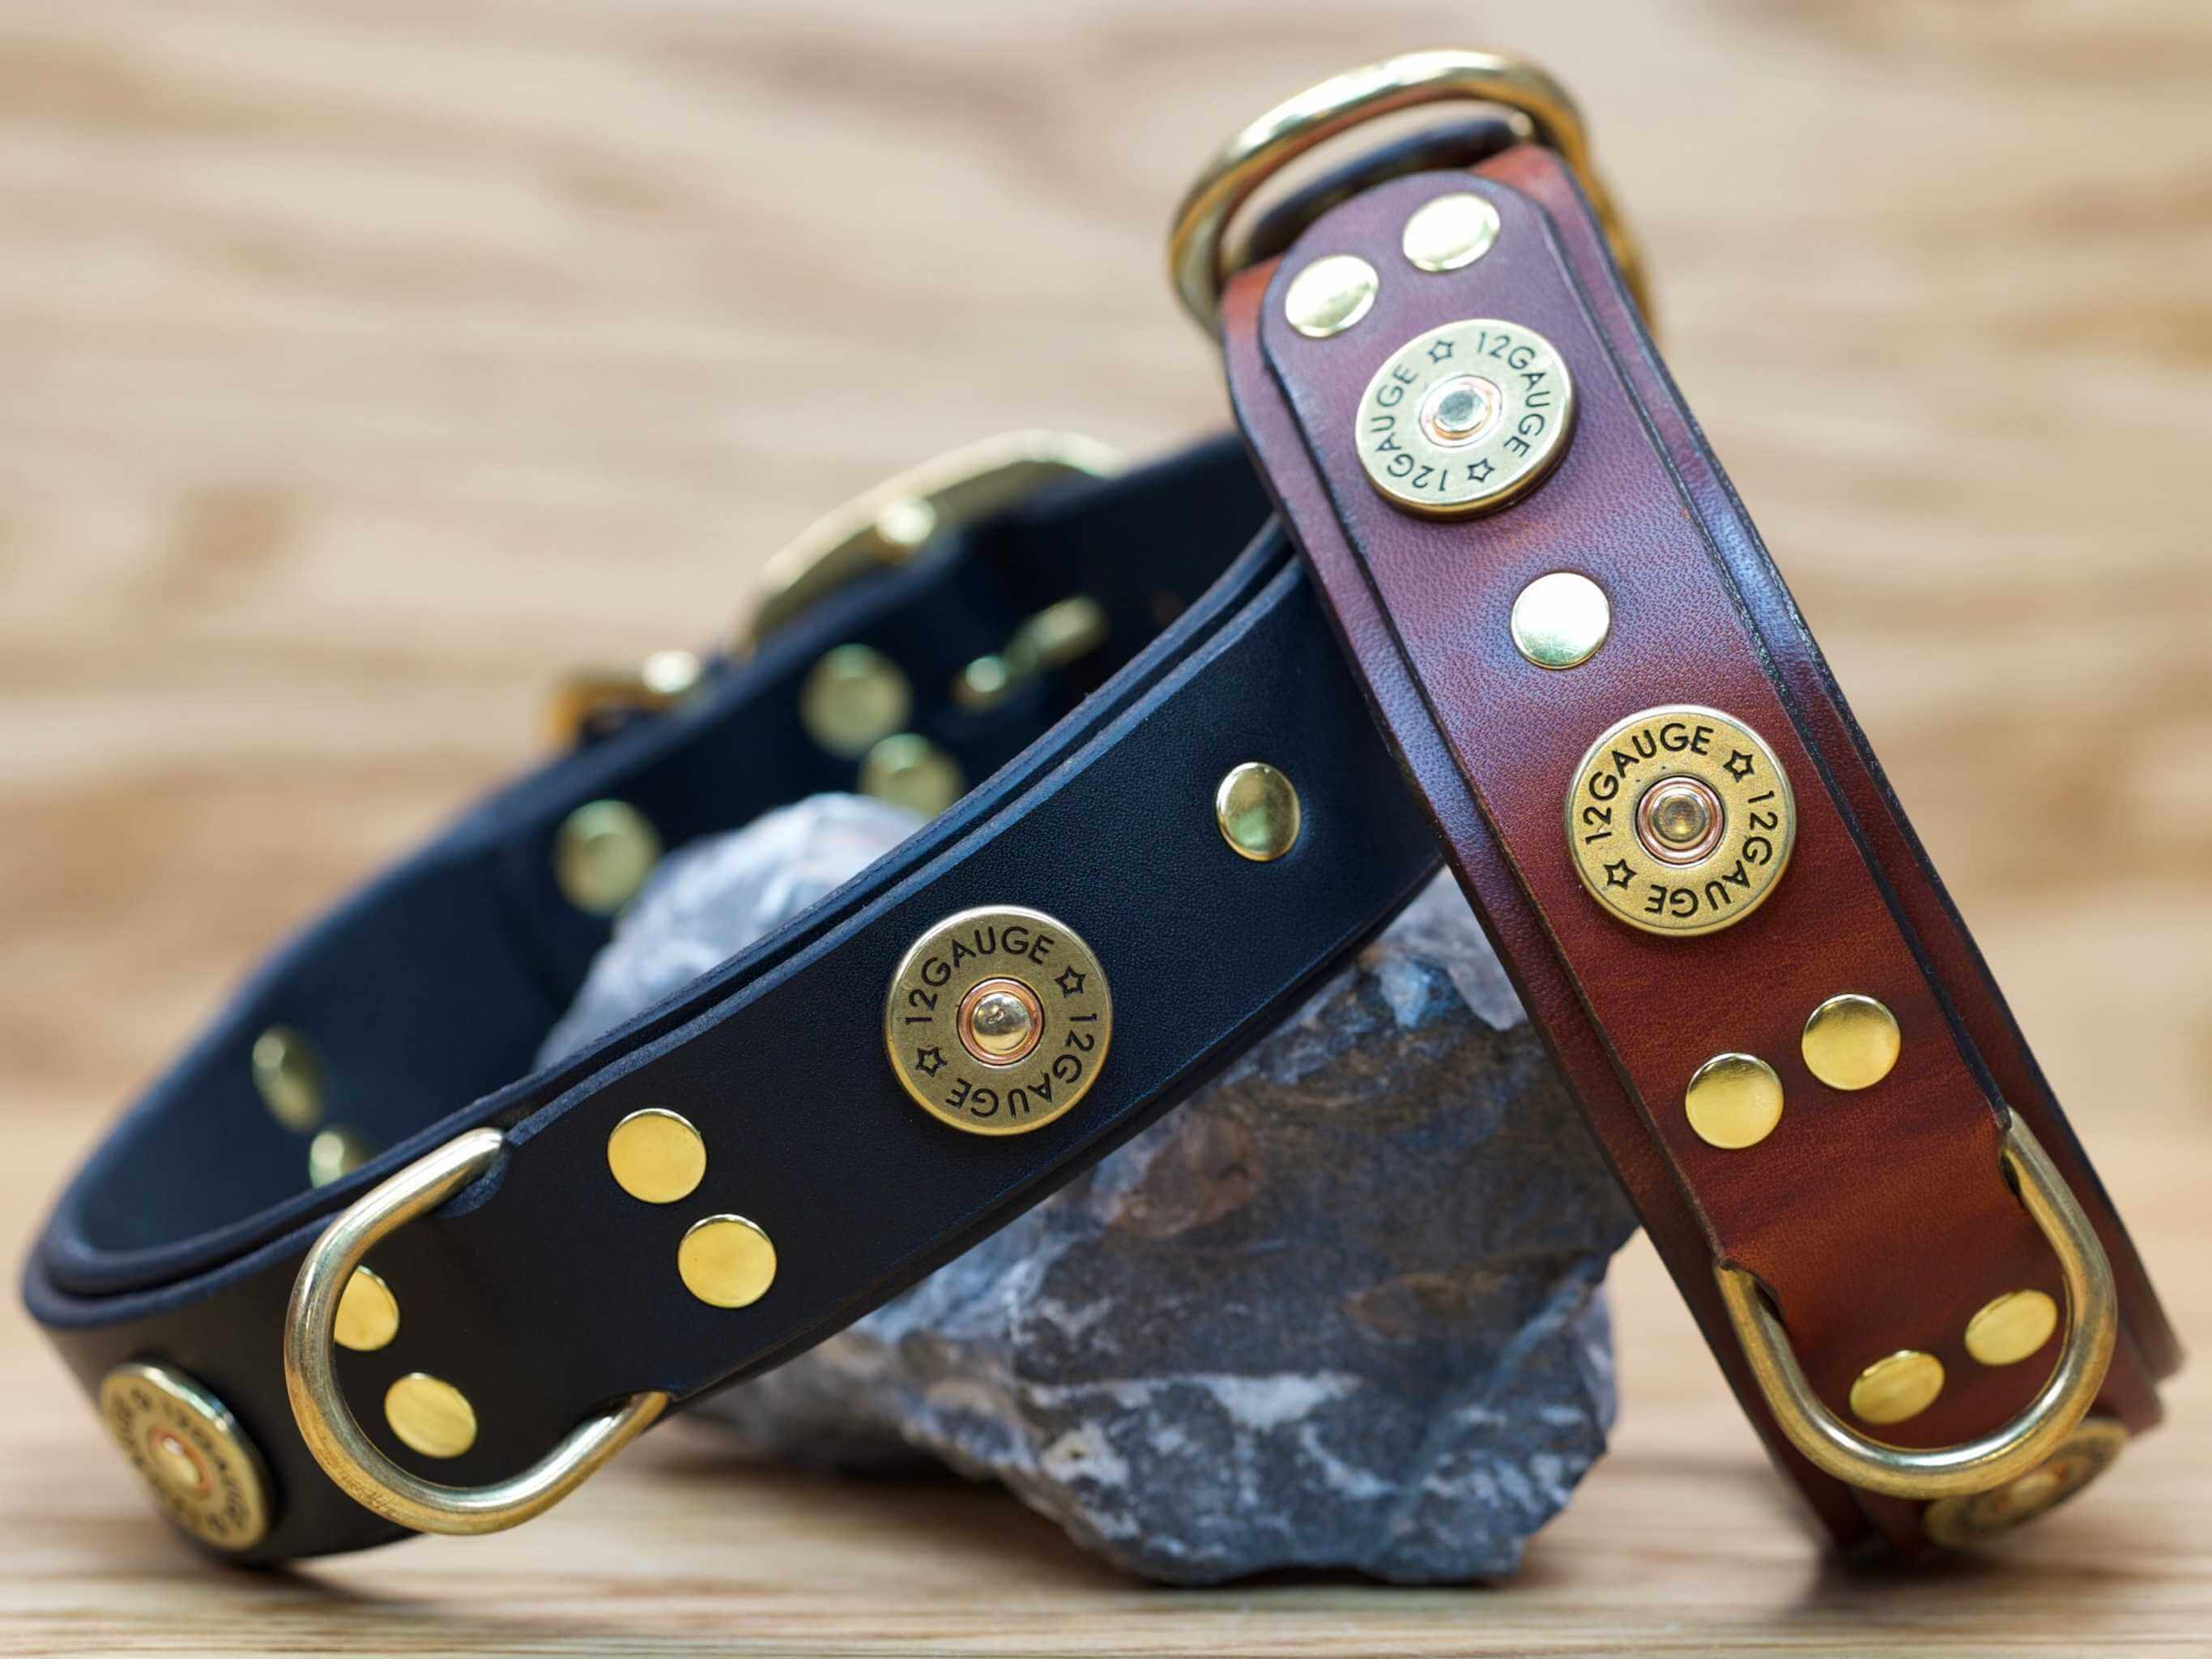 The shotgun collar is available in black and chestnut brown